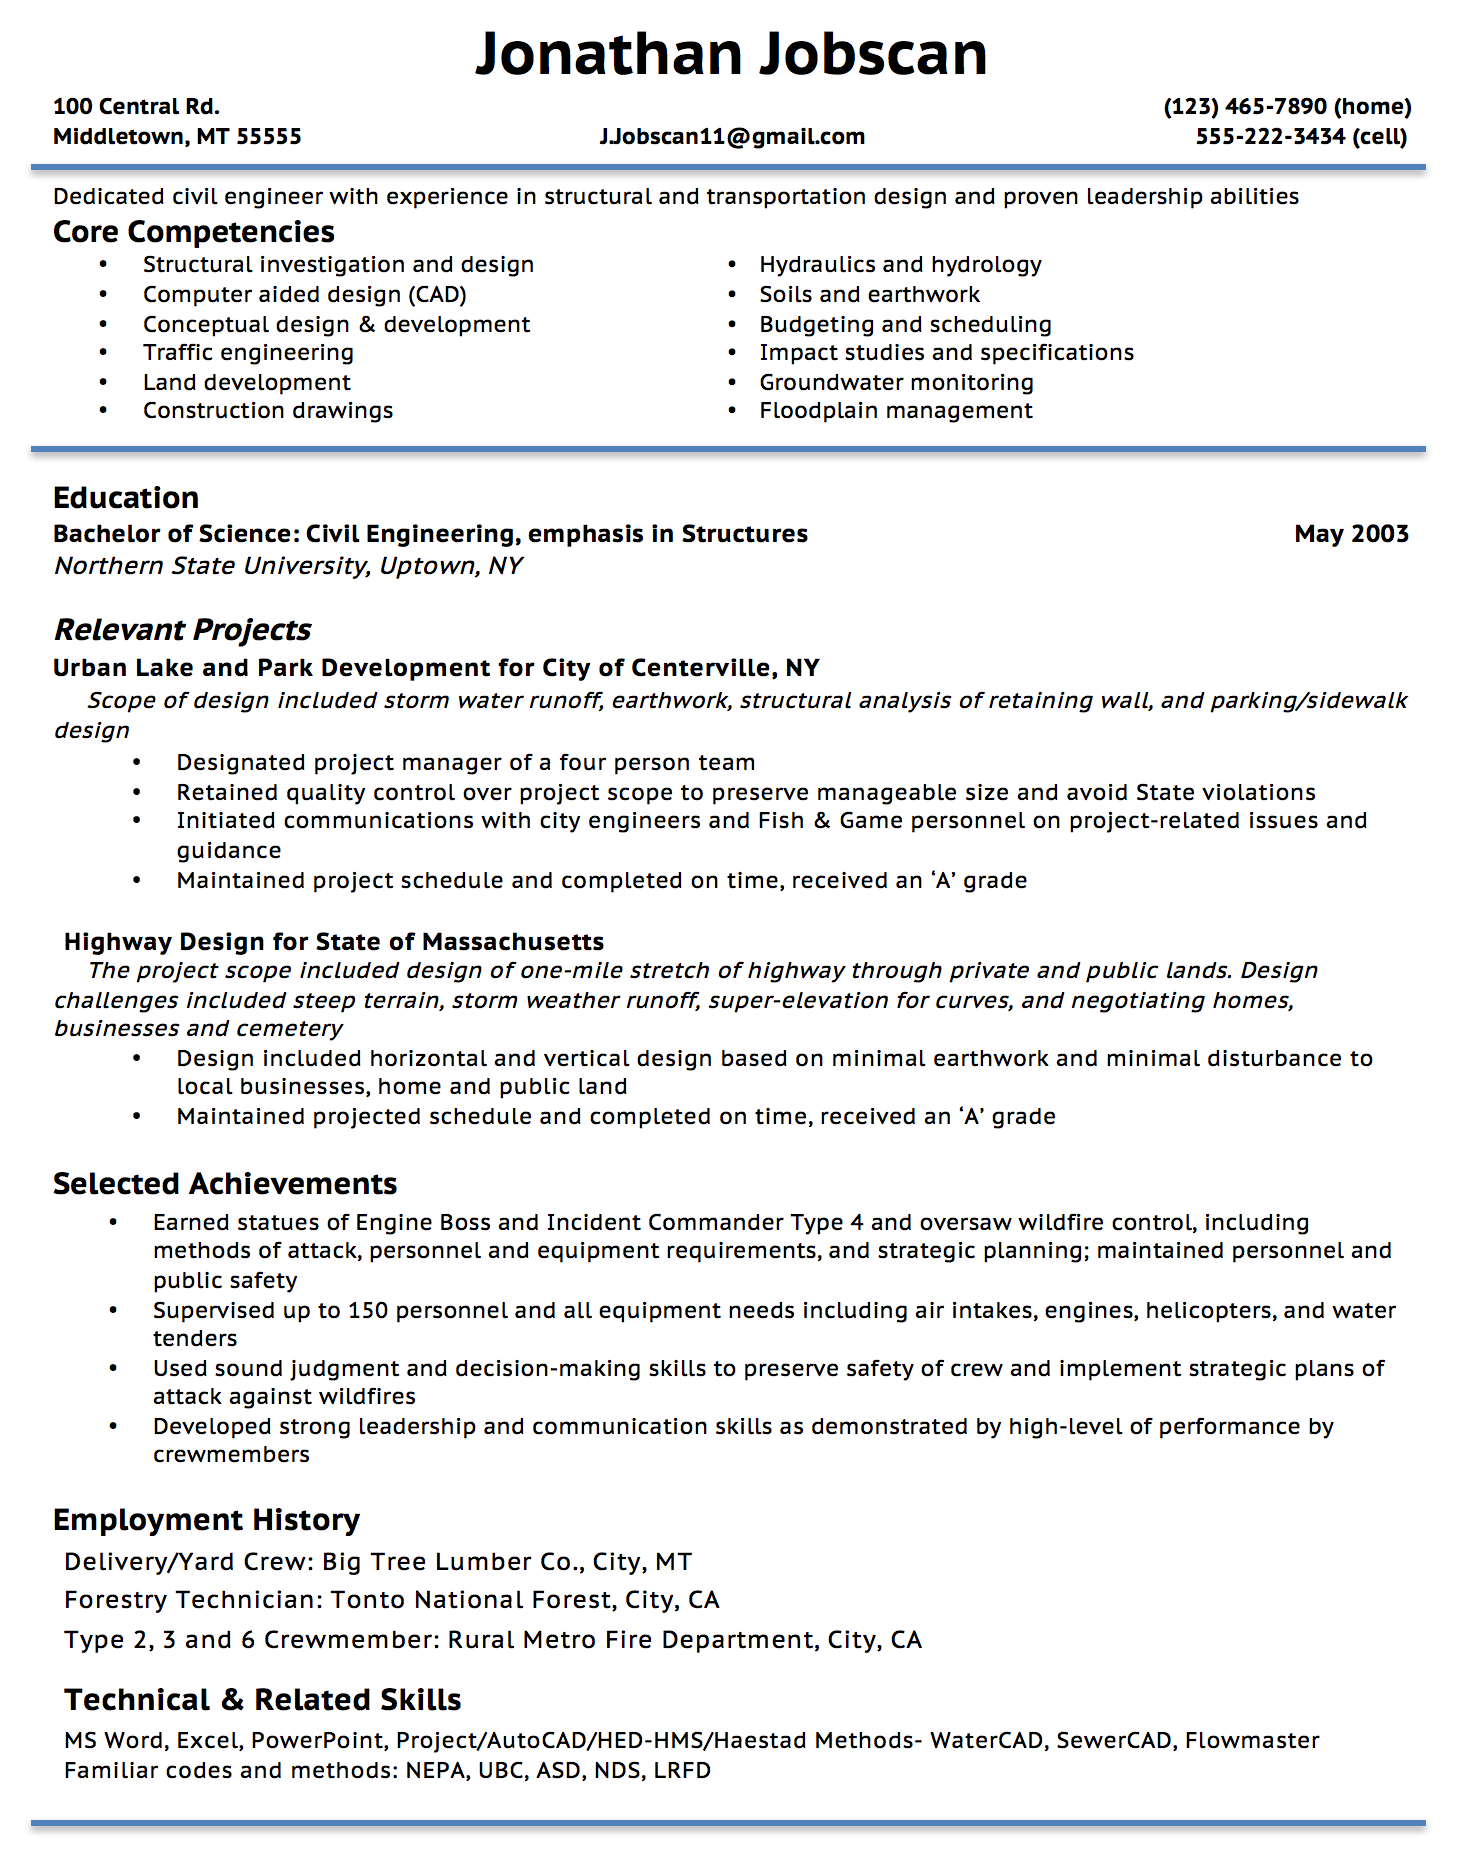 Opposenewapstandardsus  Splendid Resume Writing Guide  Jobscan With Inspiring Example Of A Functional Resume Format With Enchanting Nanny Job Description Resume Also Top Resume Examples In Addition Resume For Security Guard And Excellent Resumes As Well As General Resume Objective Statements Additionally Resume In Word From Jobscanco With Opposenewapstandardsus  Inspiring Resume Writing Guide  Jobscan With Enchanting Example Of A Functional Resume Format And Splendid Nanny Job Description Resume Also Top Resume Examples In Addition Resume For Security Guard From Jobscanco